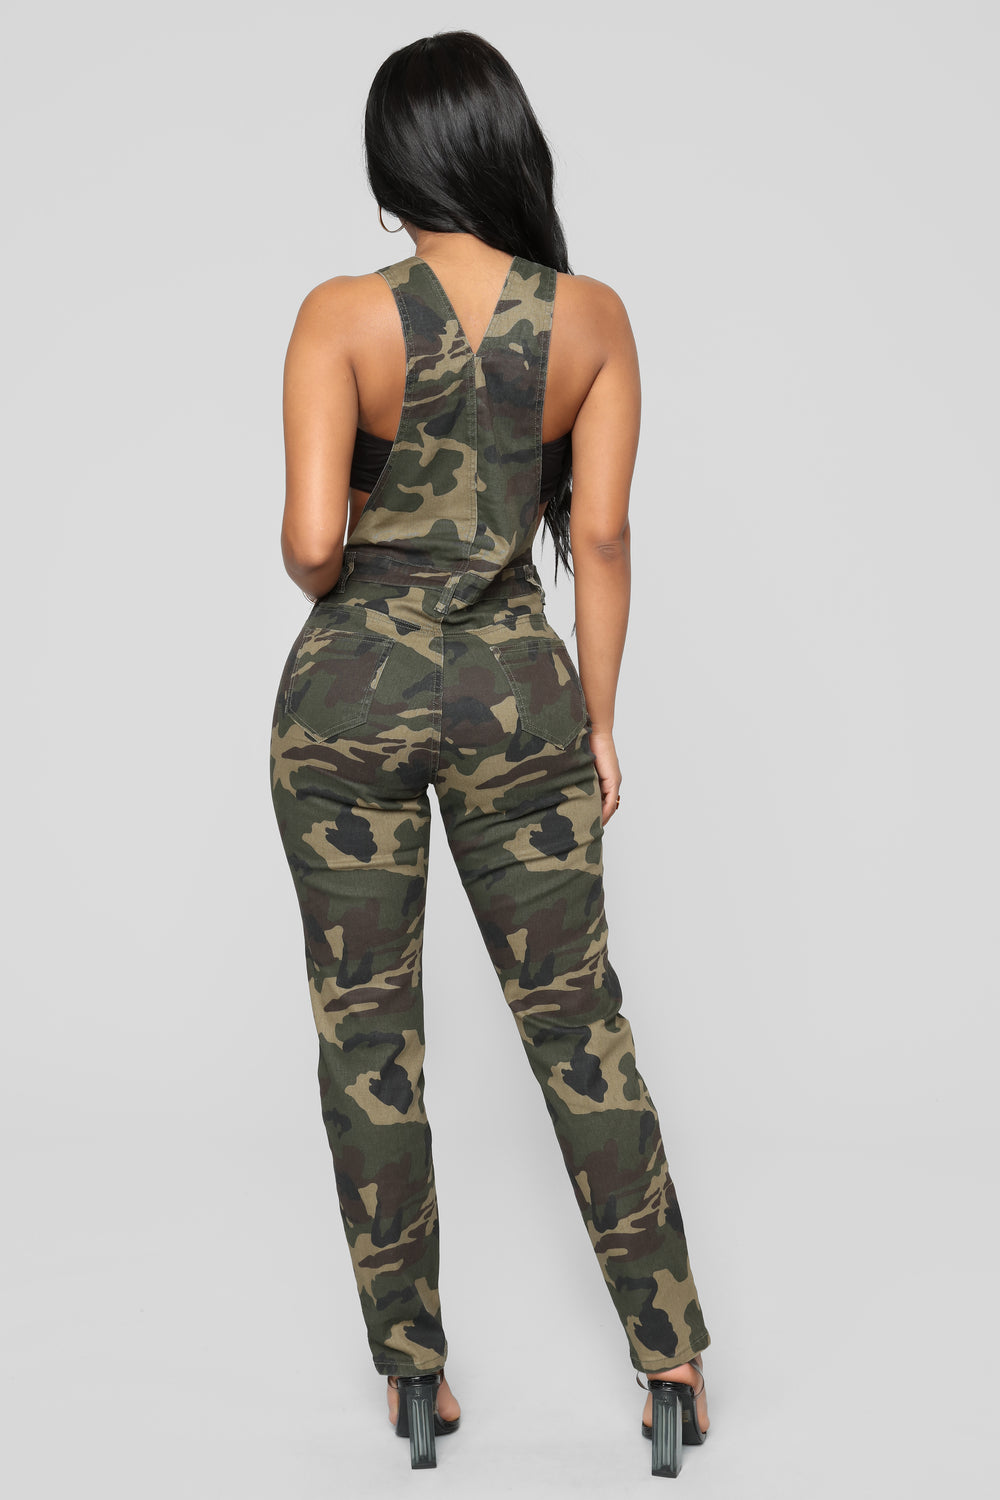 Commander Of The Squad Cargo Overall - Olive